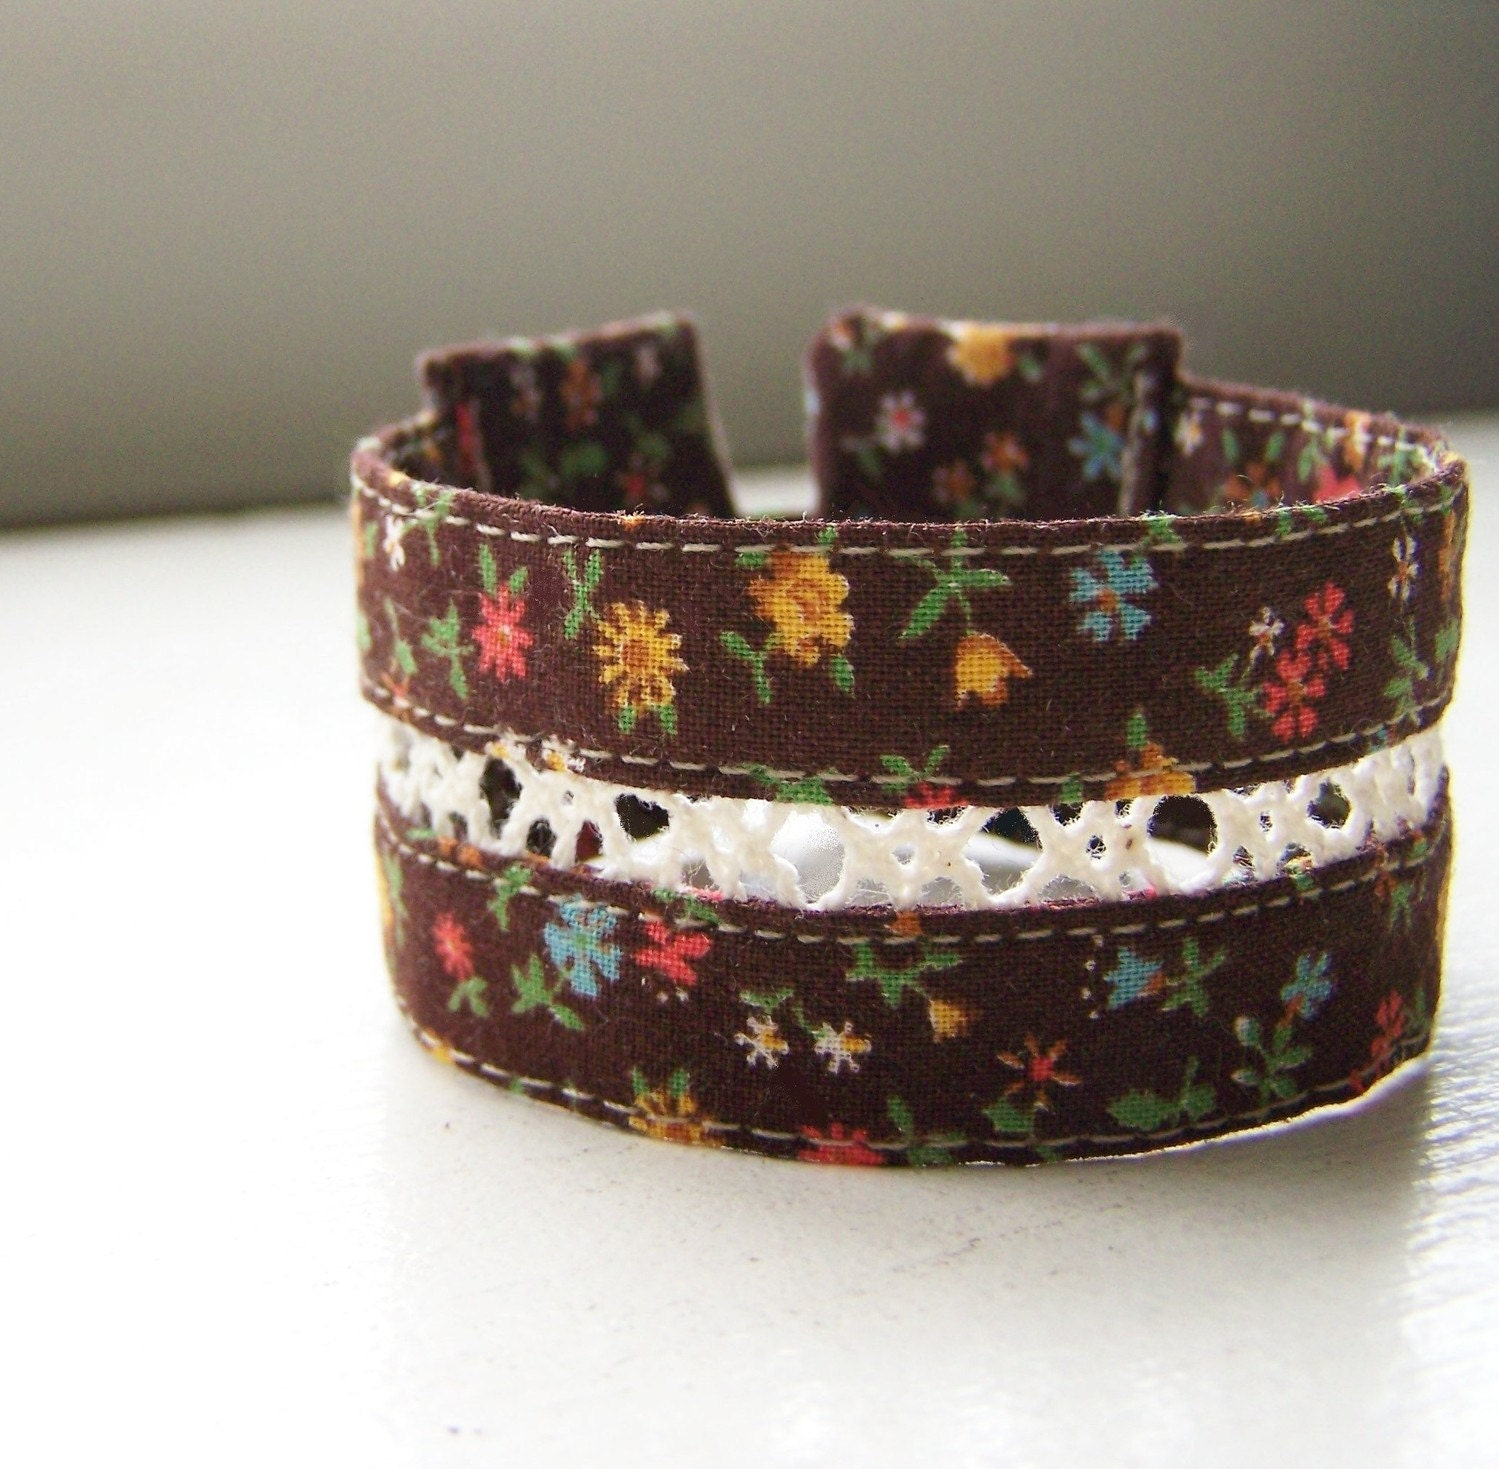 Double strand cuff bracelet in vintage calico and crocheted lace READY TO SHIP